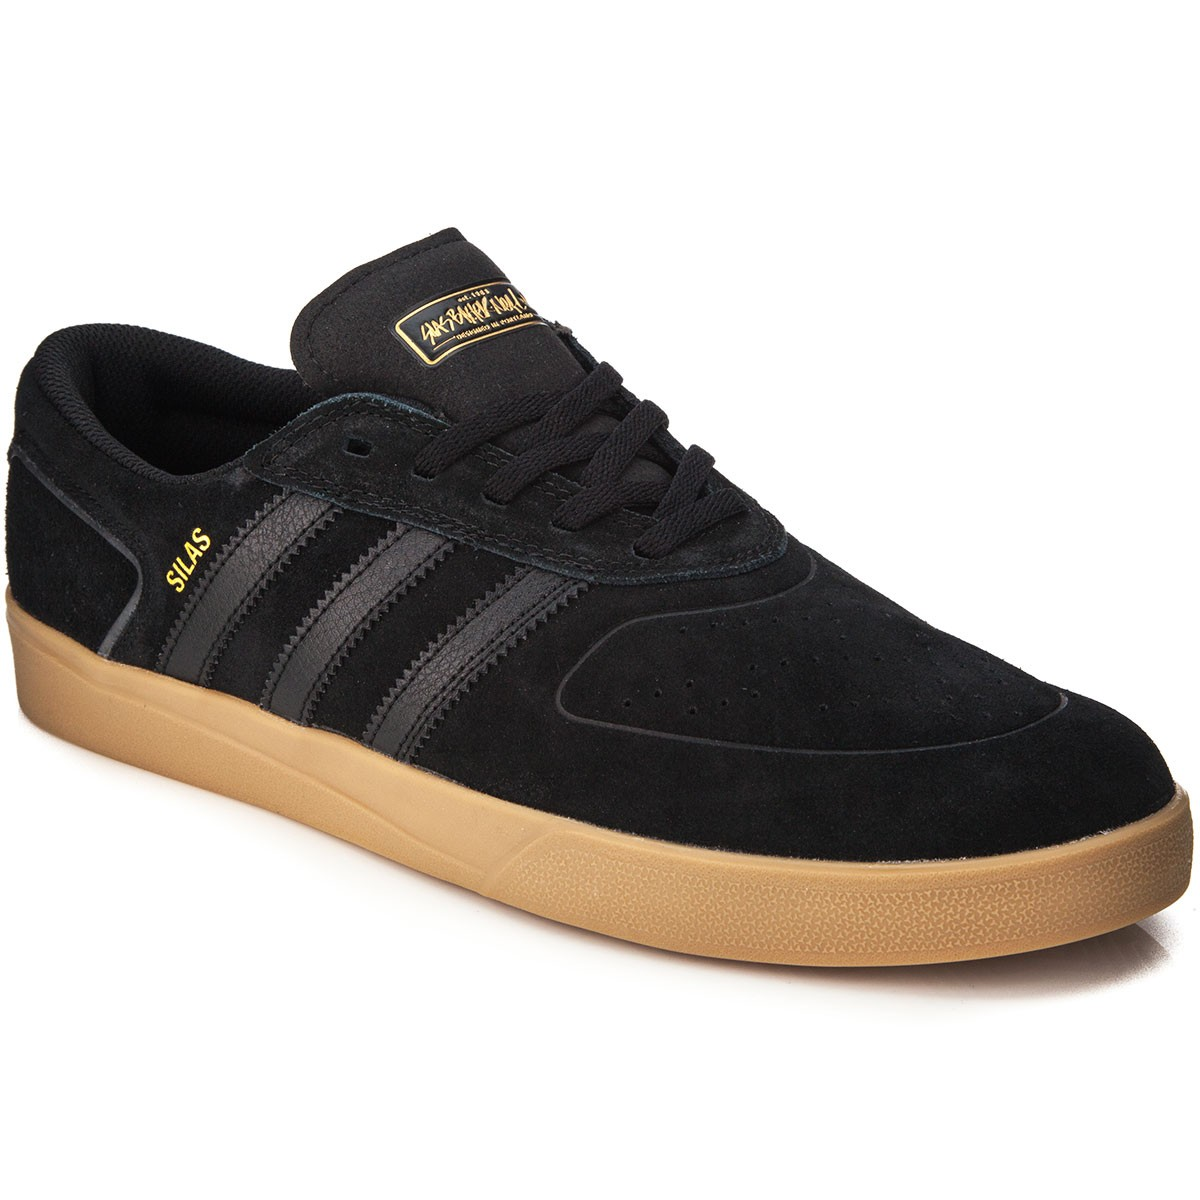 030e34e6d5 Adidas Silas Vulc Adv Shoes - Black Black Gold Metallic - 7.0